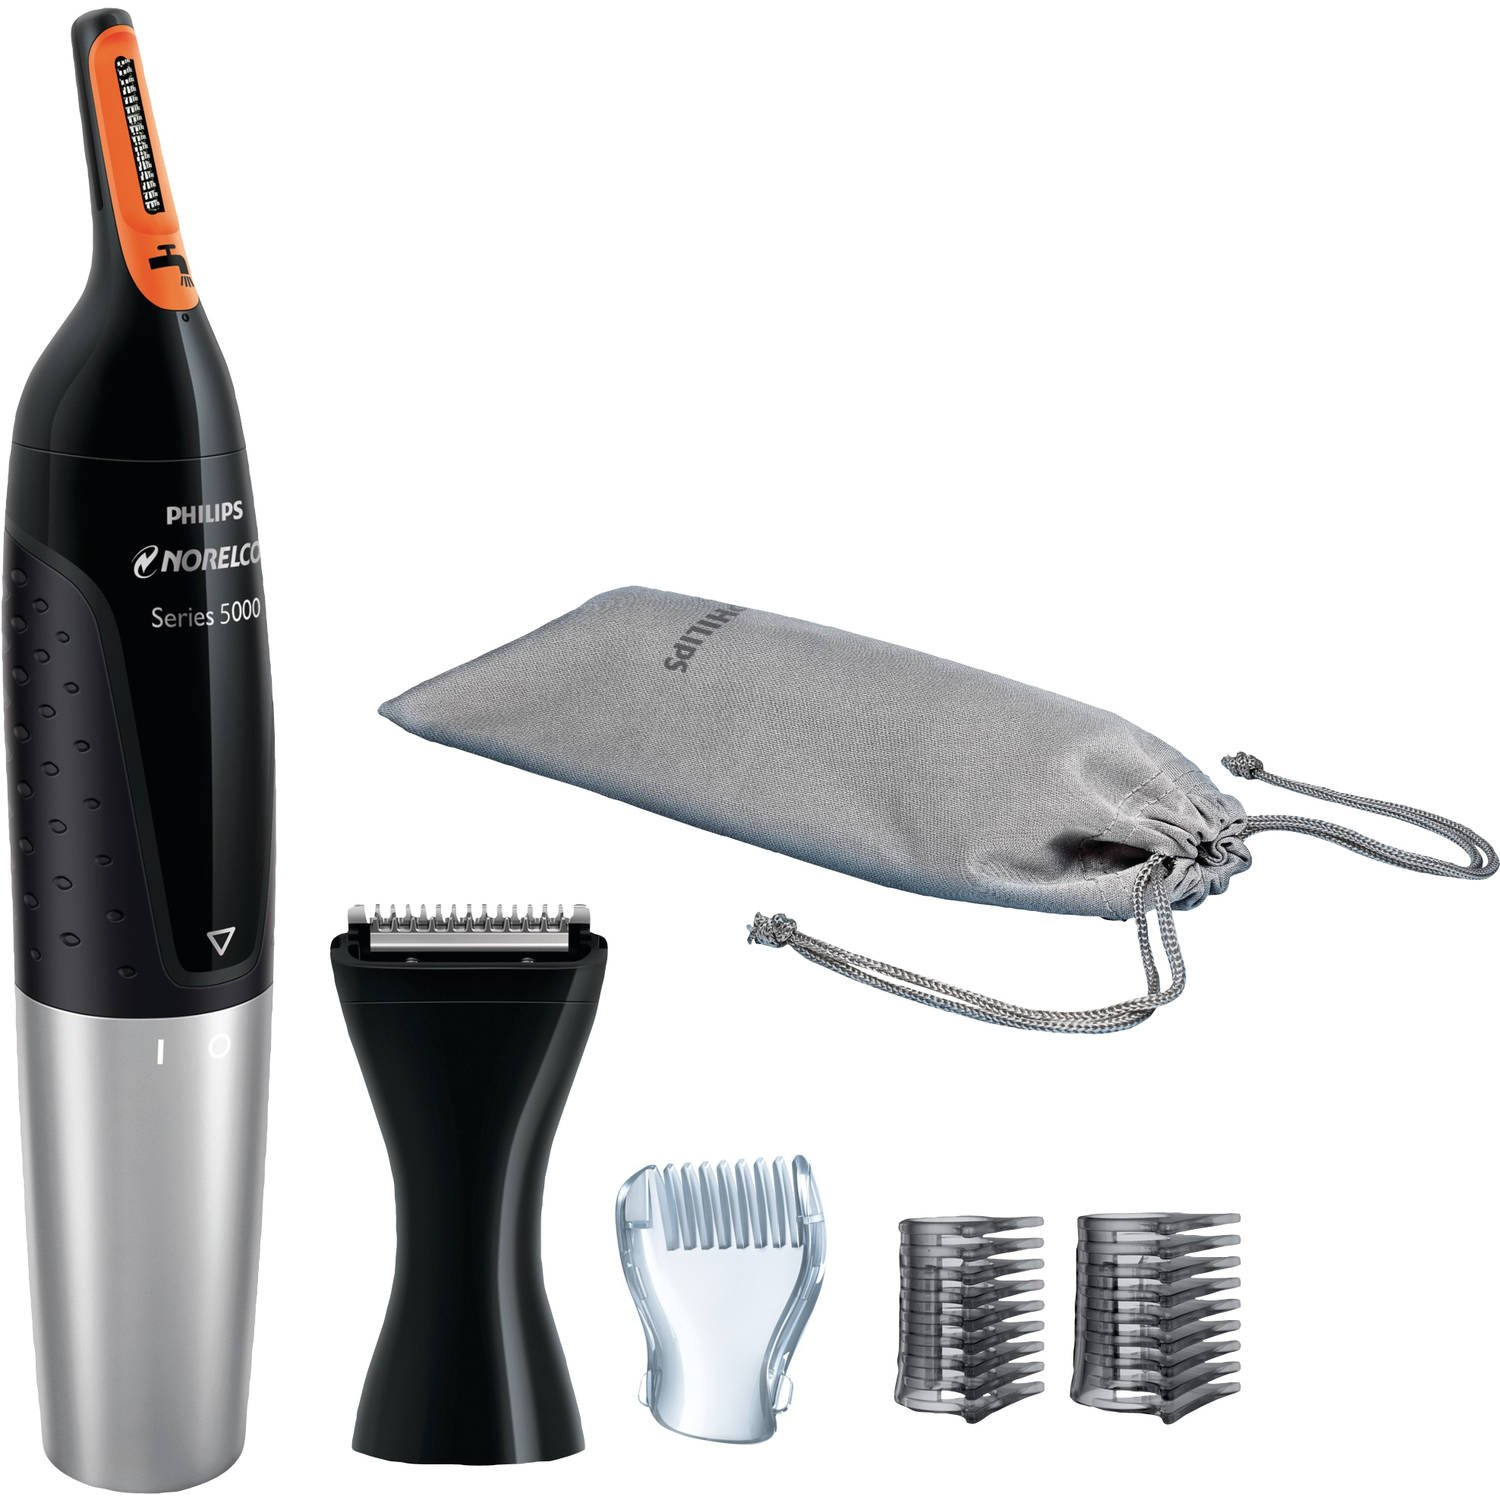 Philips Norelco All-in-One Personal Groomer Hair Cutting Care Trimmer for Men